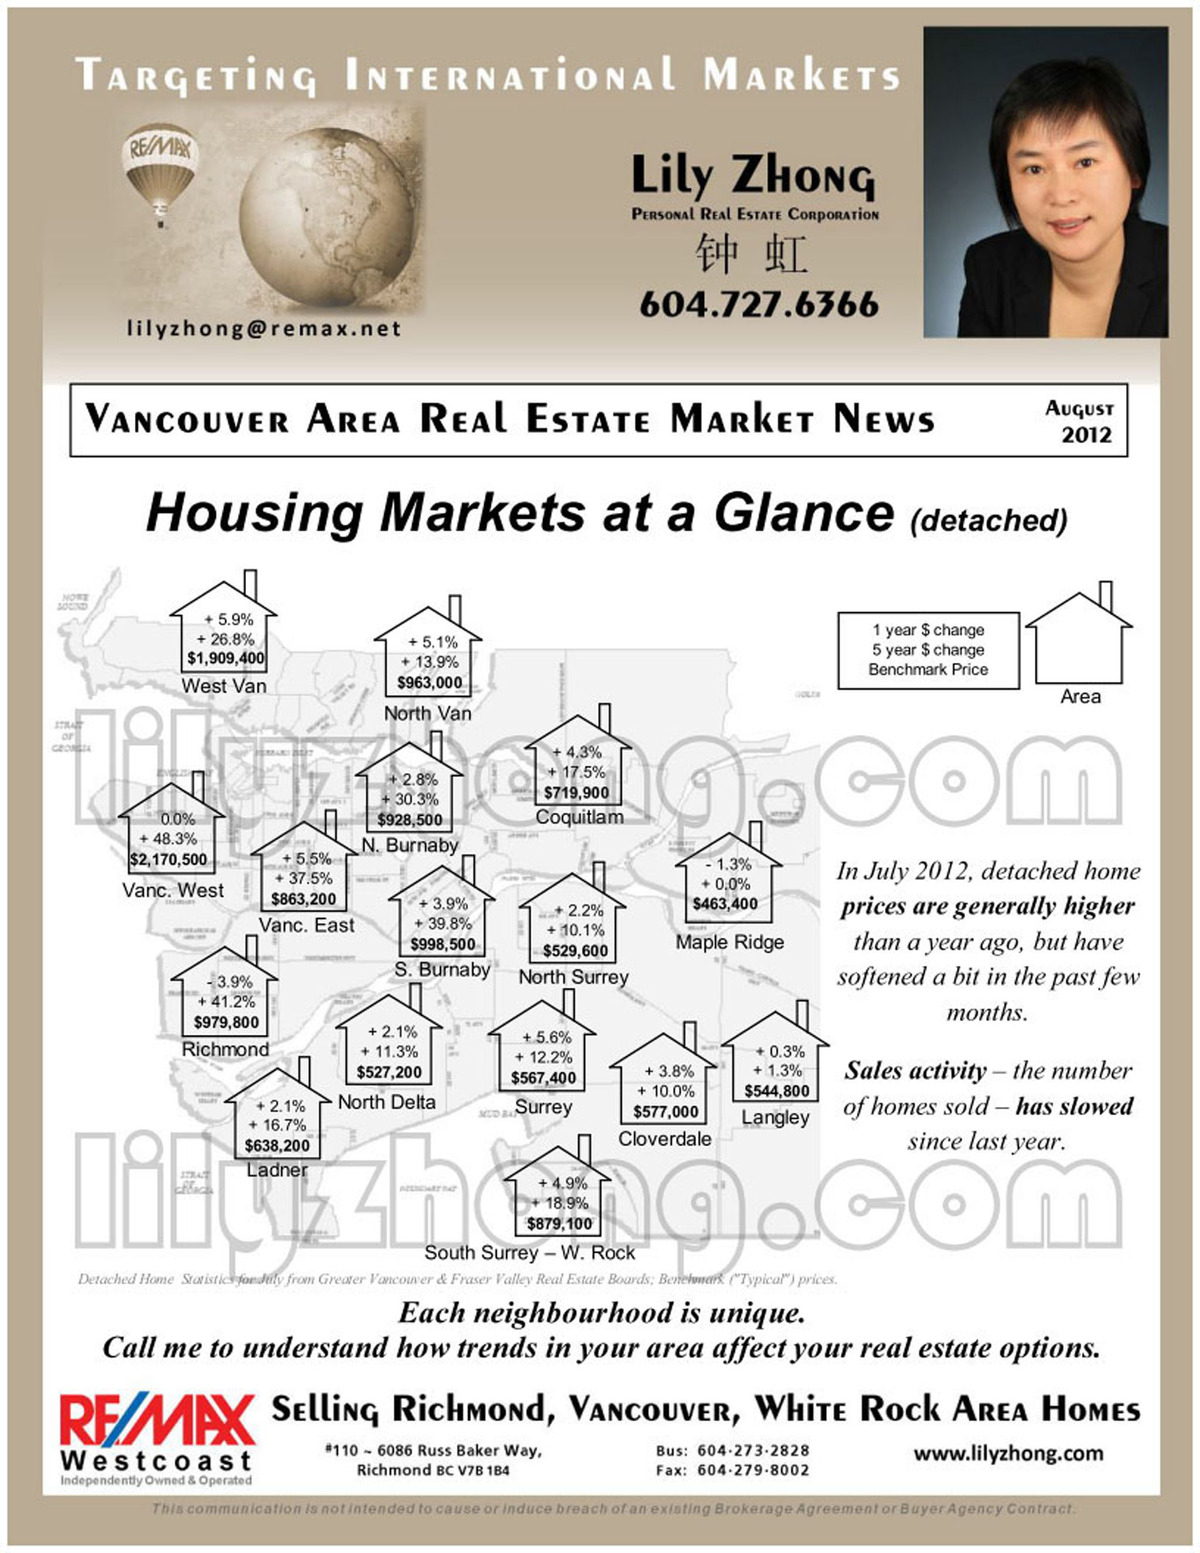 vancouver area real estate market news